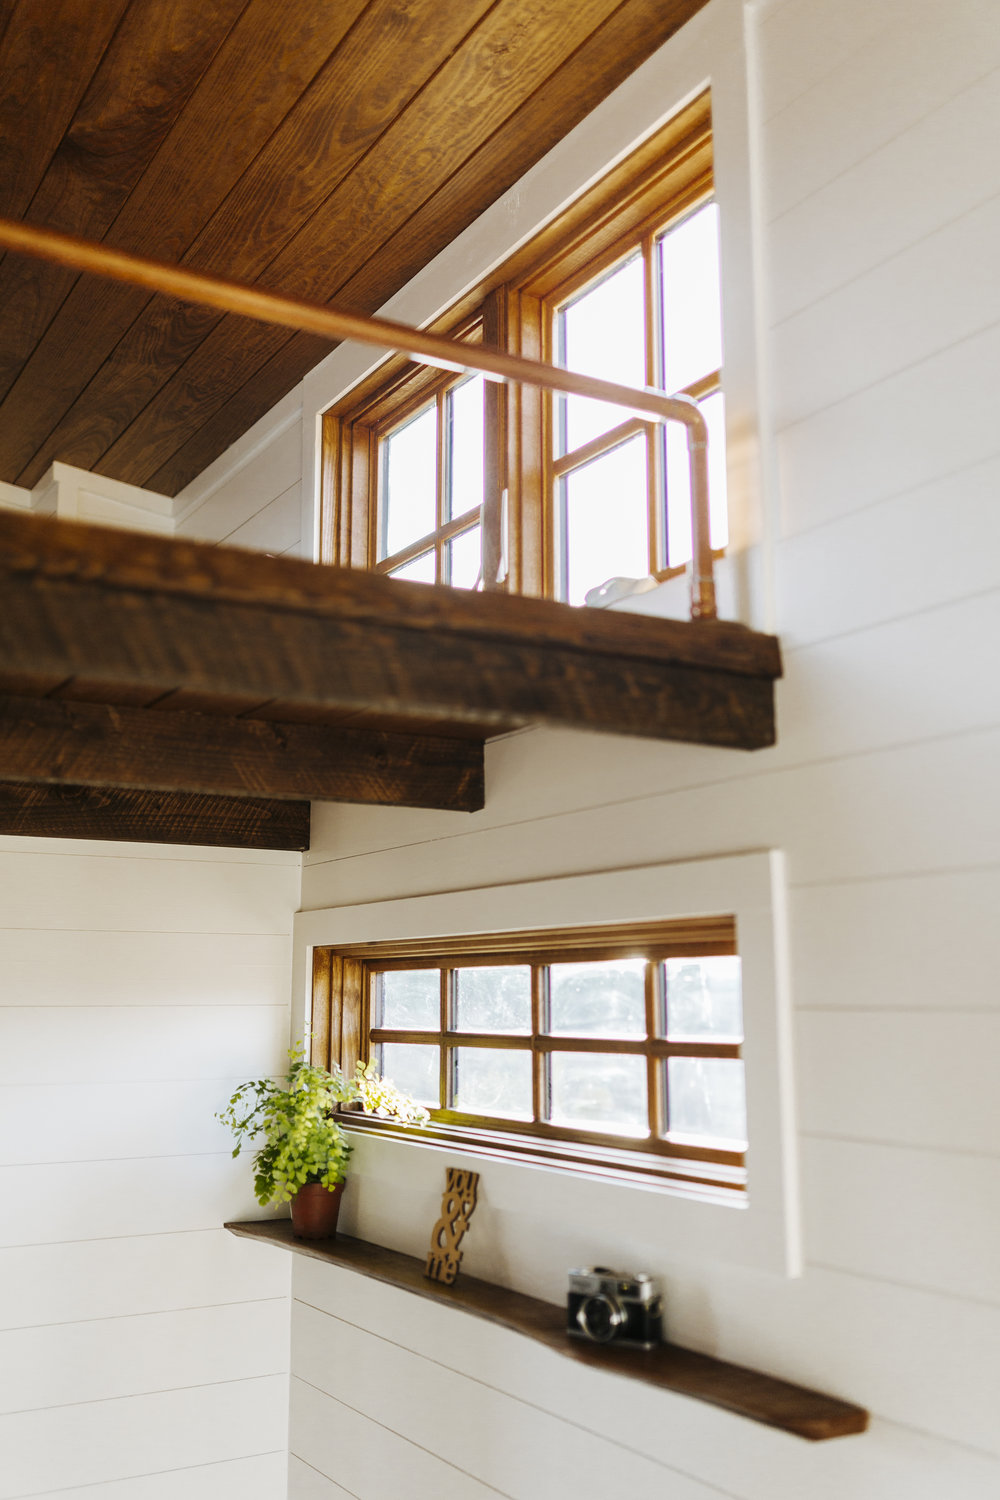 The Monocle by Wind River Tiny Homes - loft, wood clad windows, custom copper railing, live edge shelf